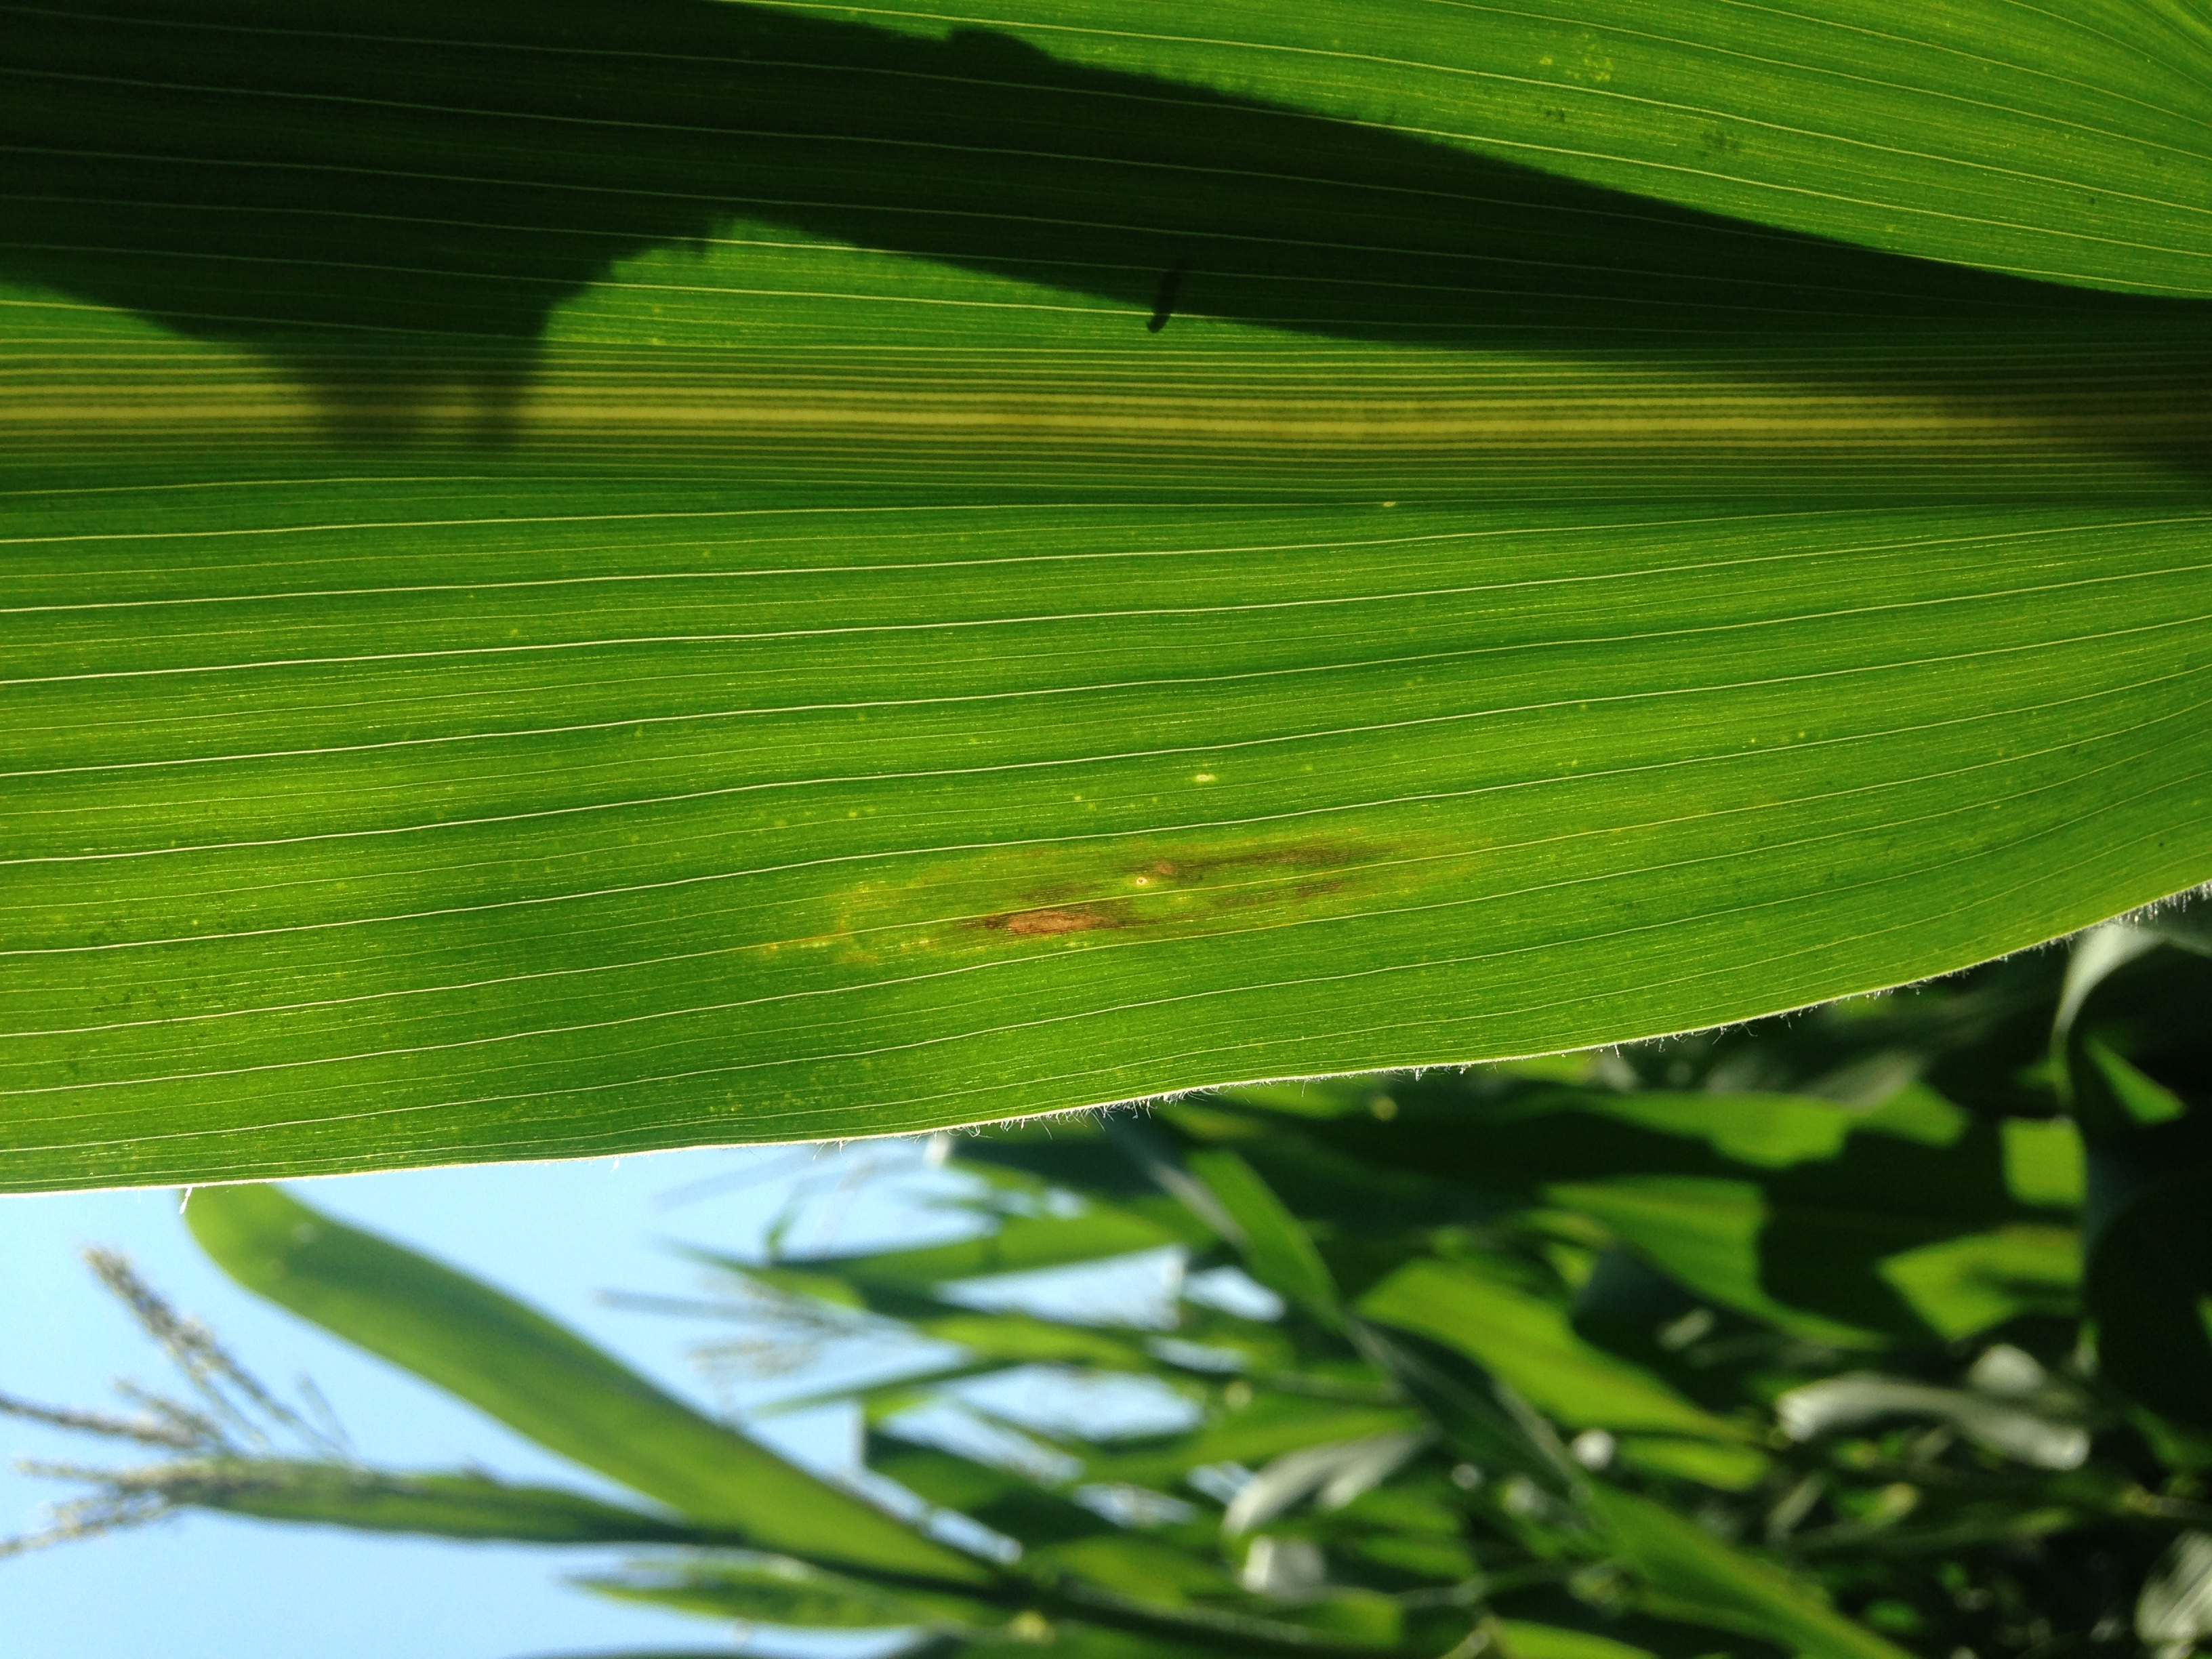 Hybrids resistant to northern corn leaf blight have smaller and less developed lesions.